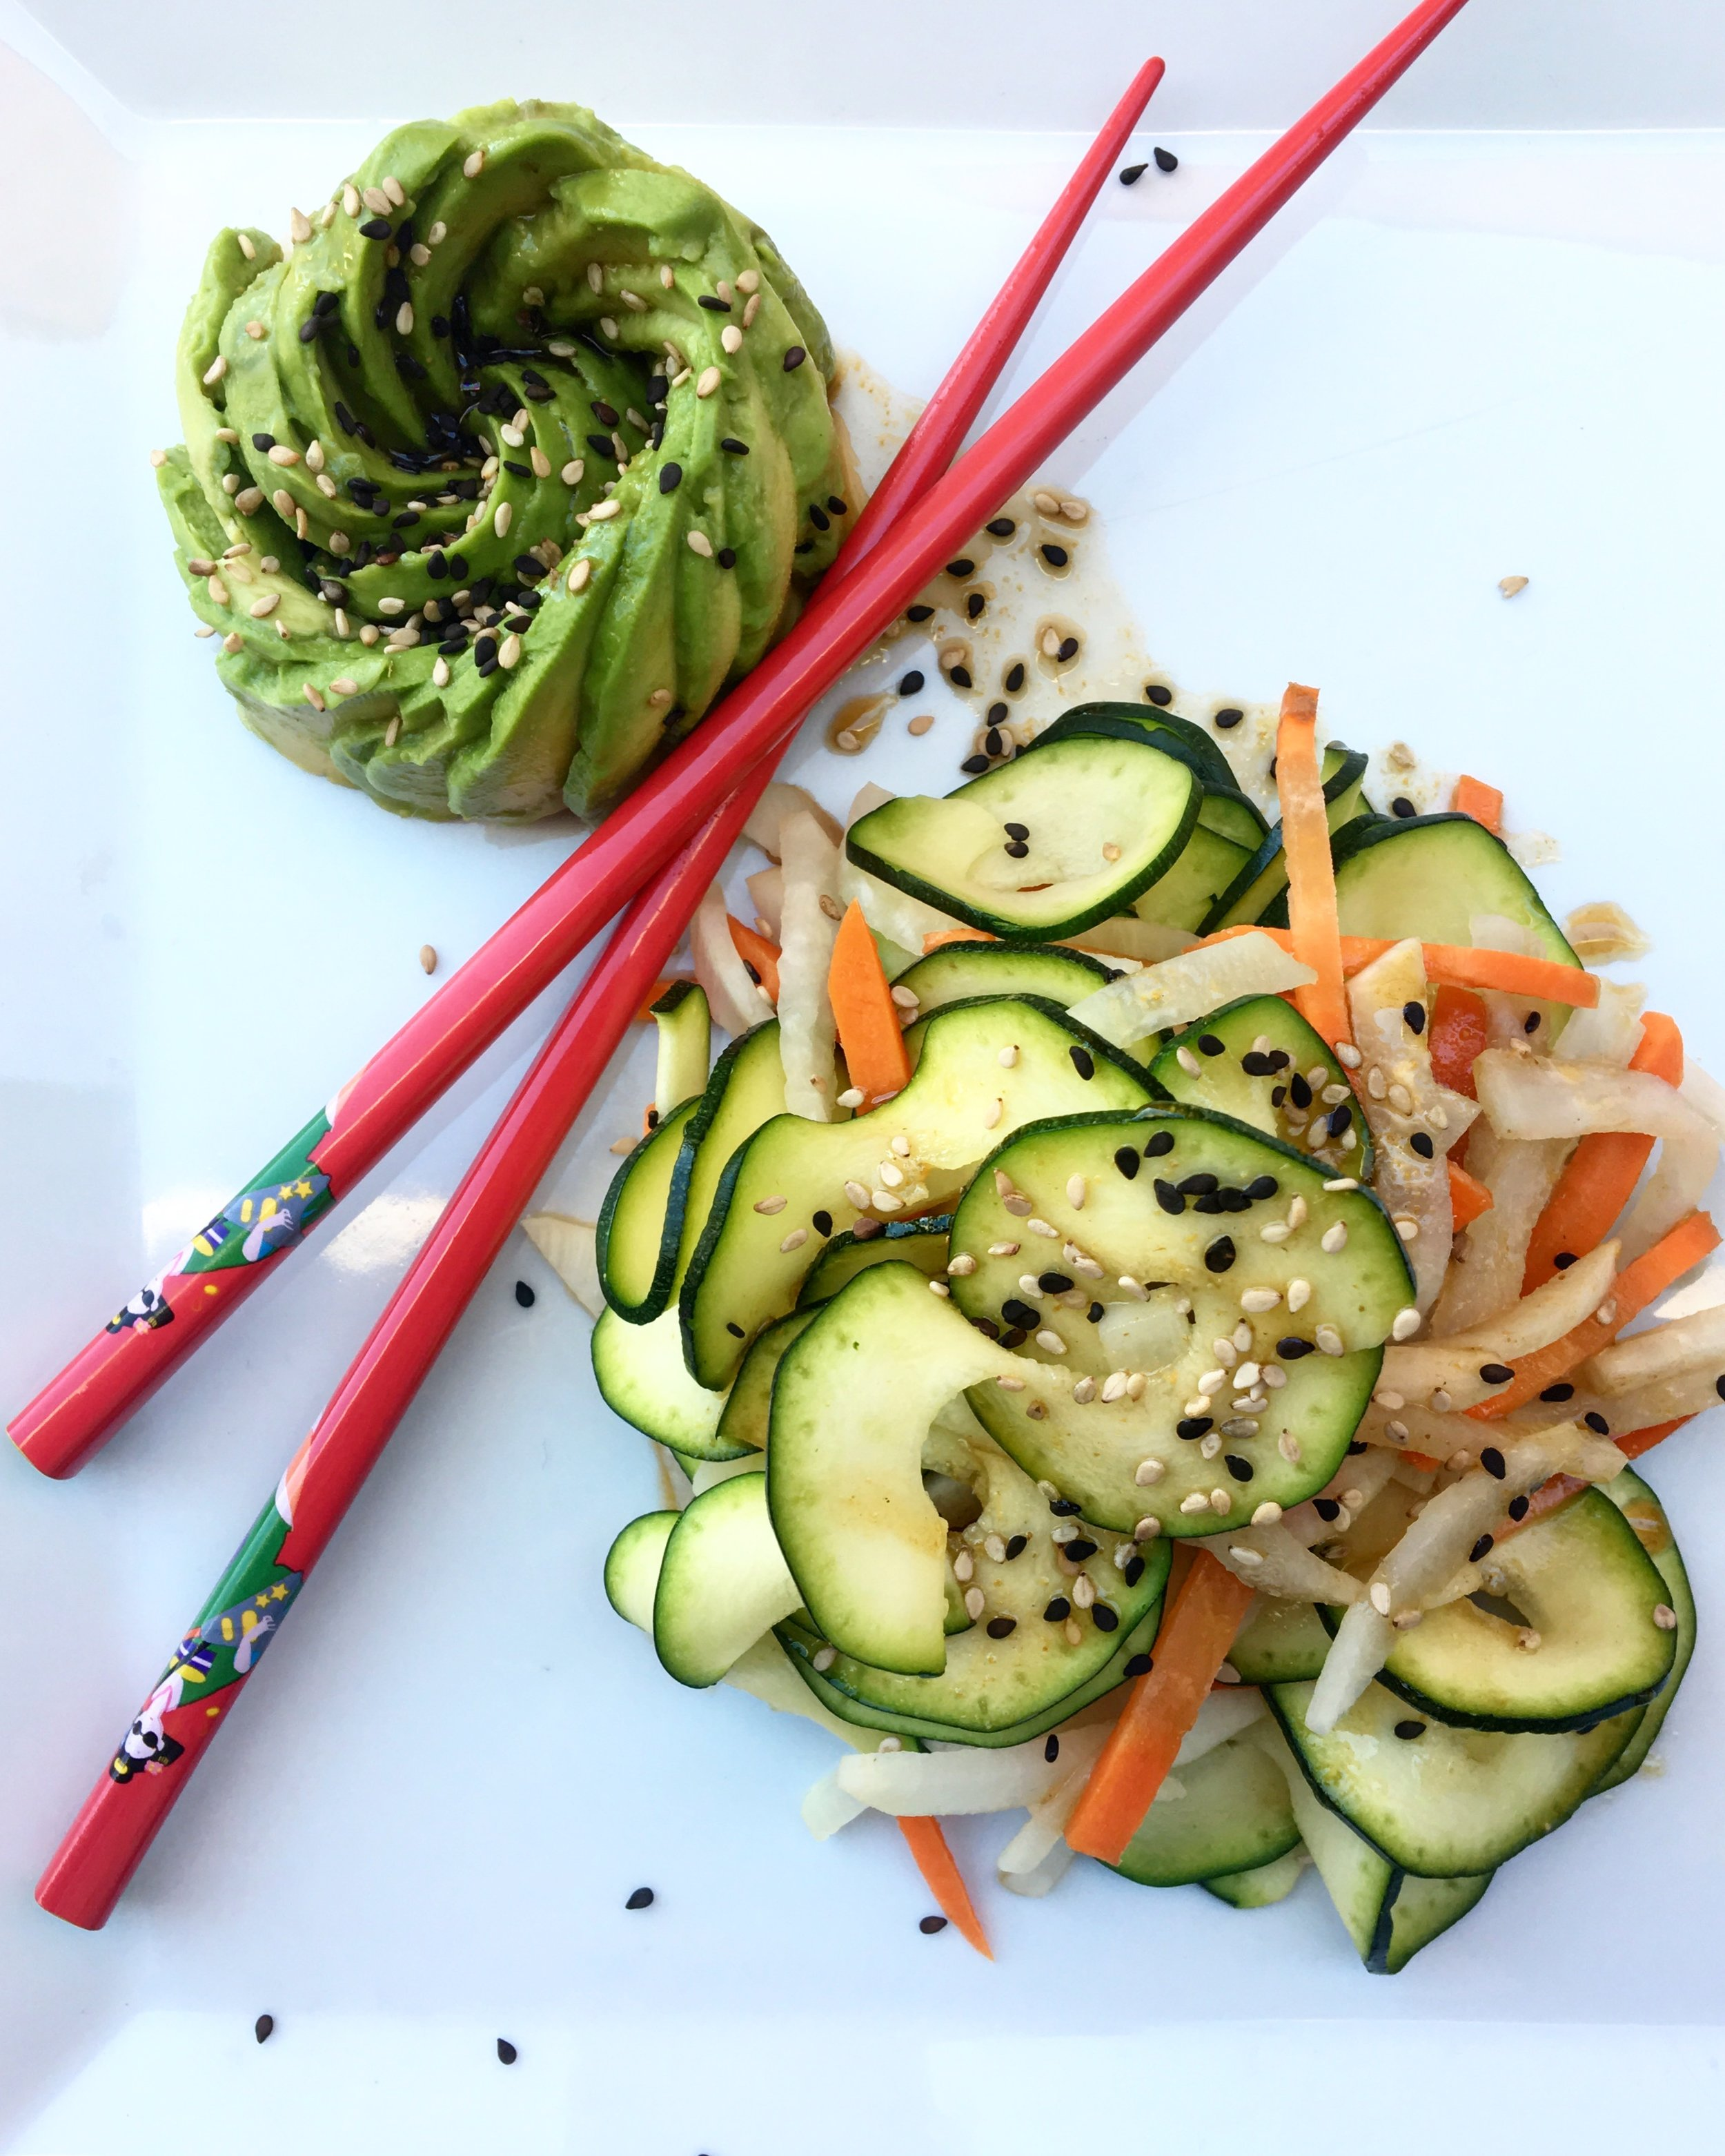 Freestyle Salad: Zucchini / Carrots / Daikon + Sesame Ginger Dressing